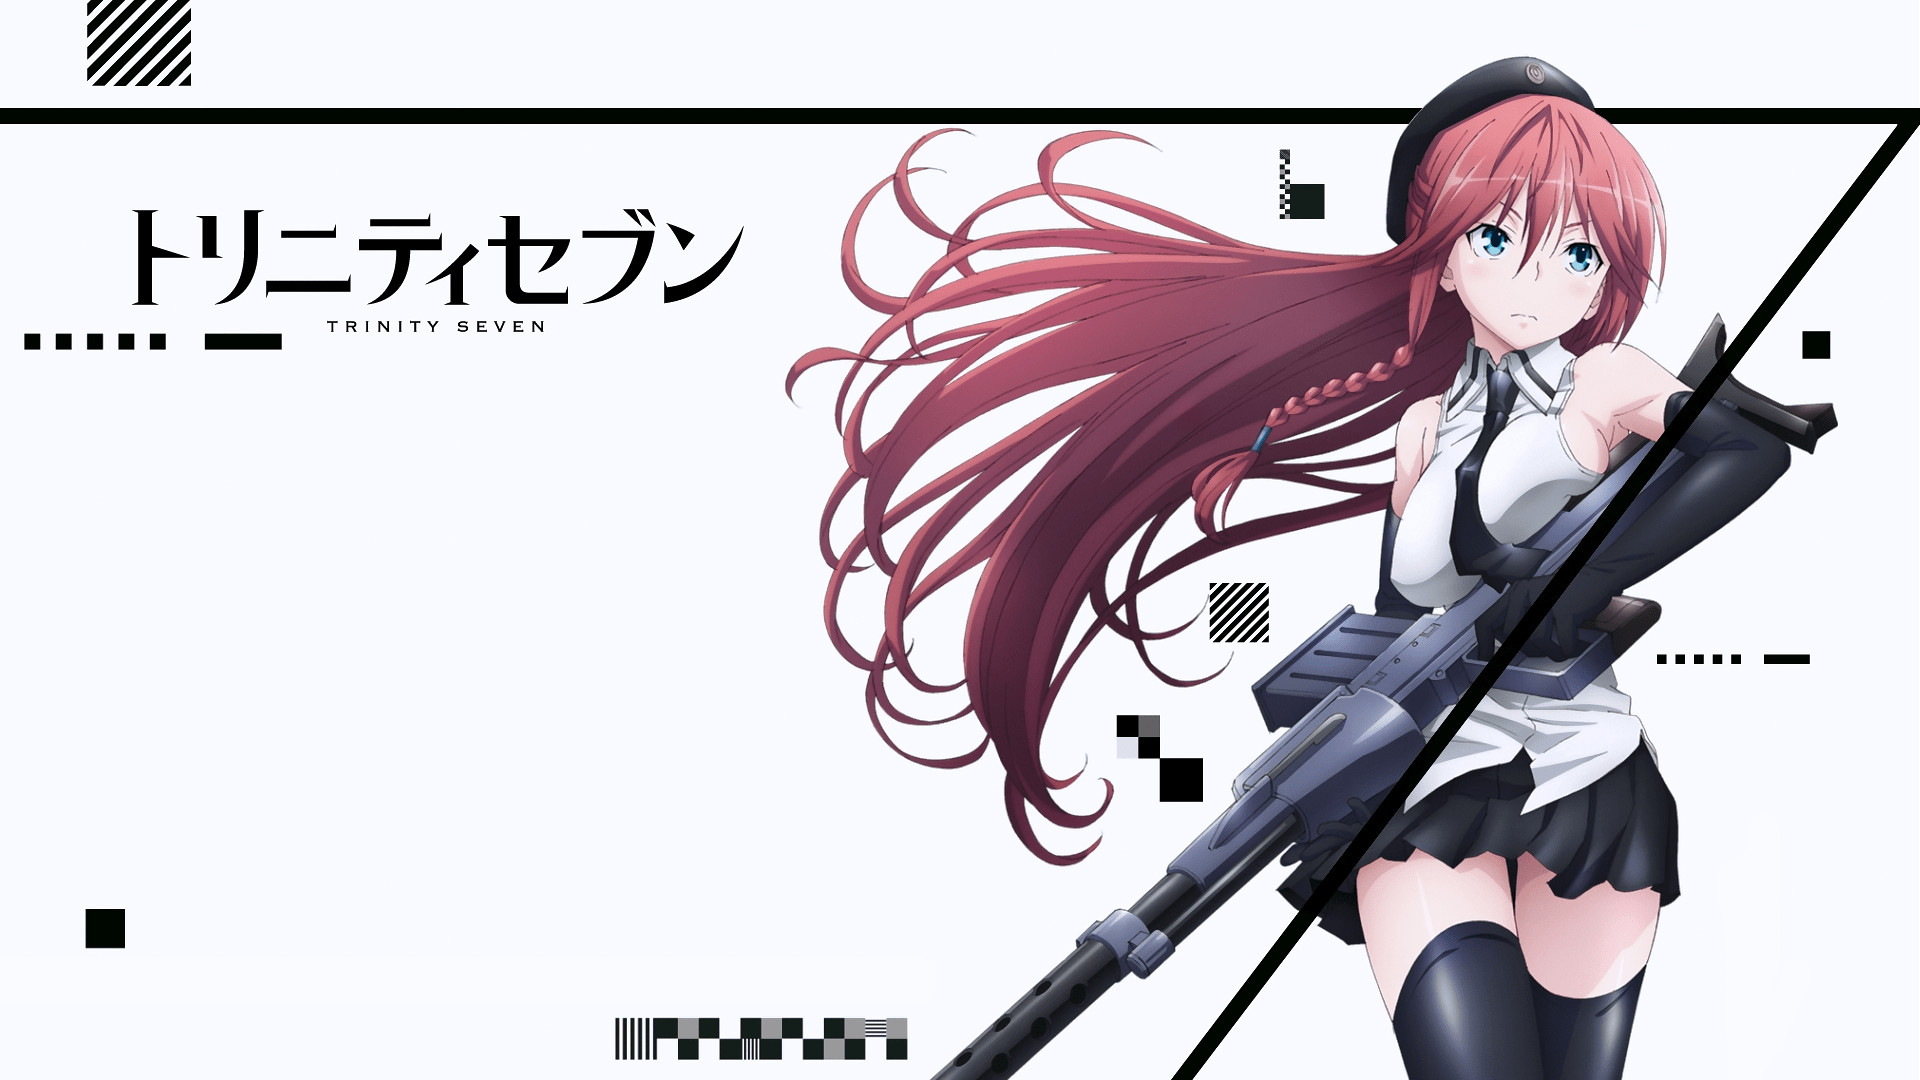 Res: 1920x1080, Trinity Seven Lilith Asami 1080p HD Wallpaper Background